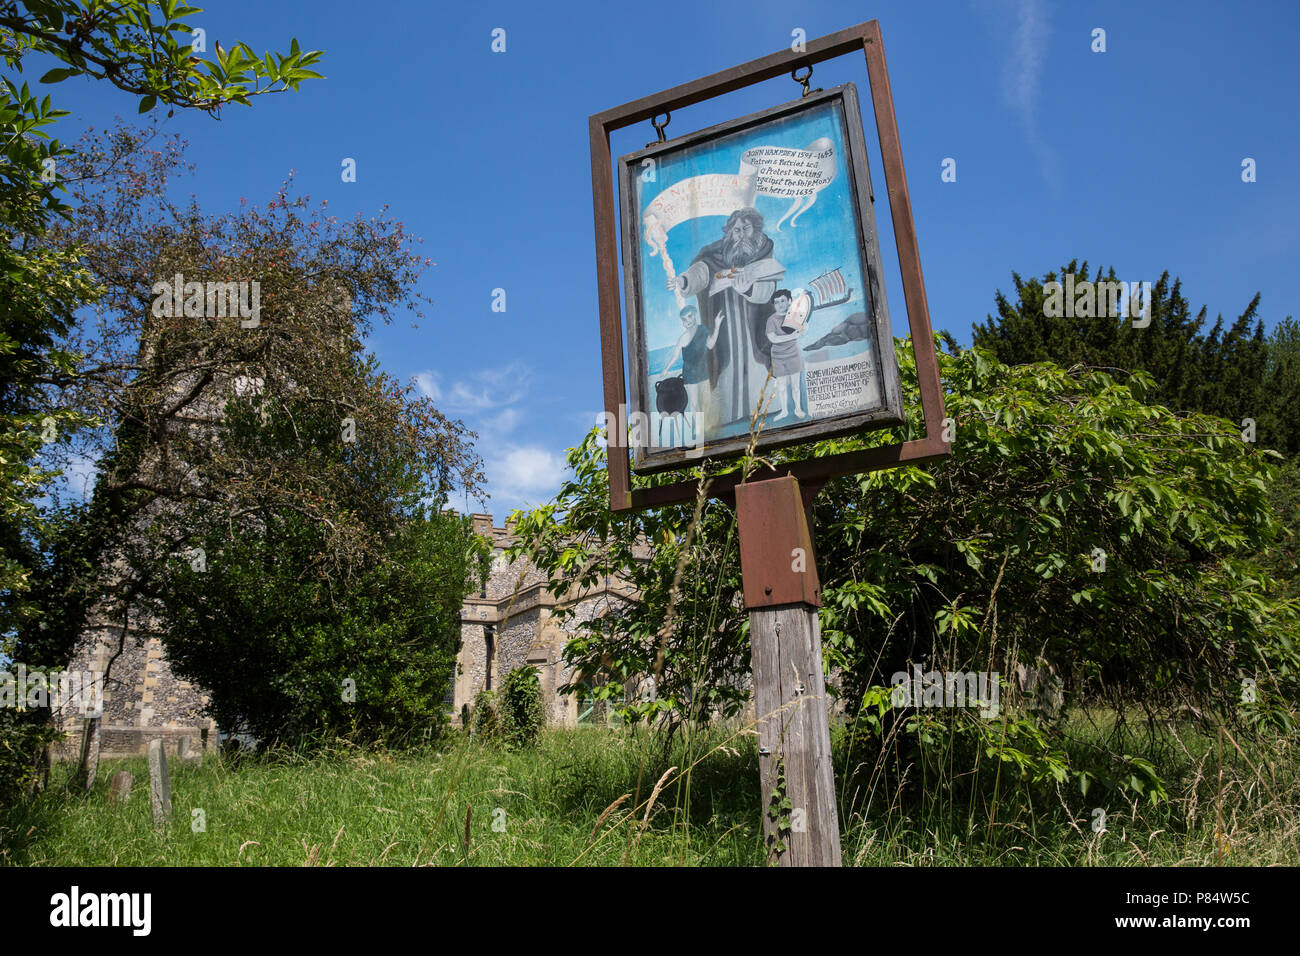 Great Kimble, UK. 6th July, 2018. A sign featuring an image of St Nicholas, patron saint of children, outside St Nicholas Church. - Stock Image